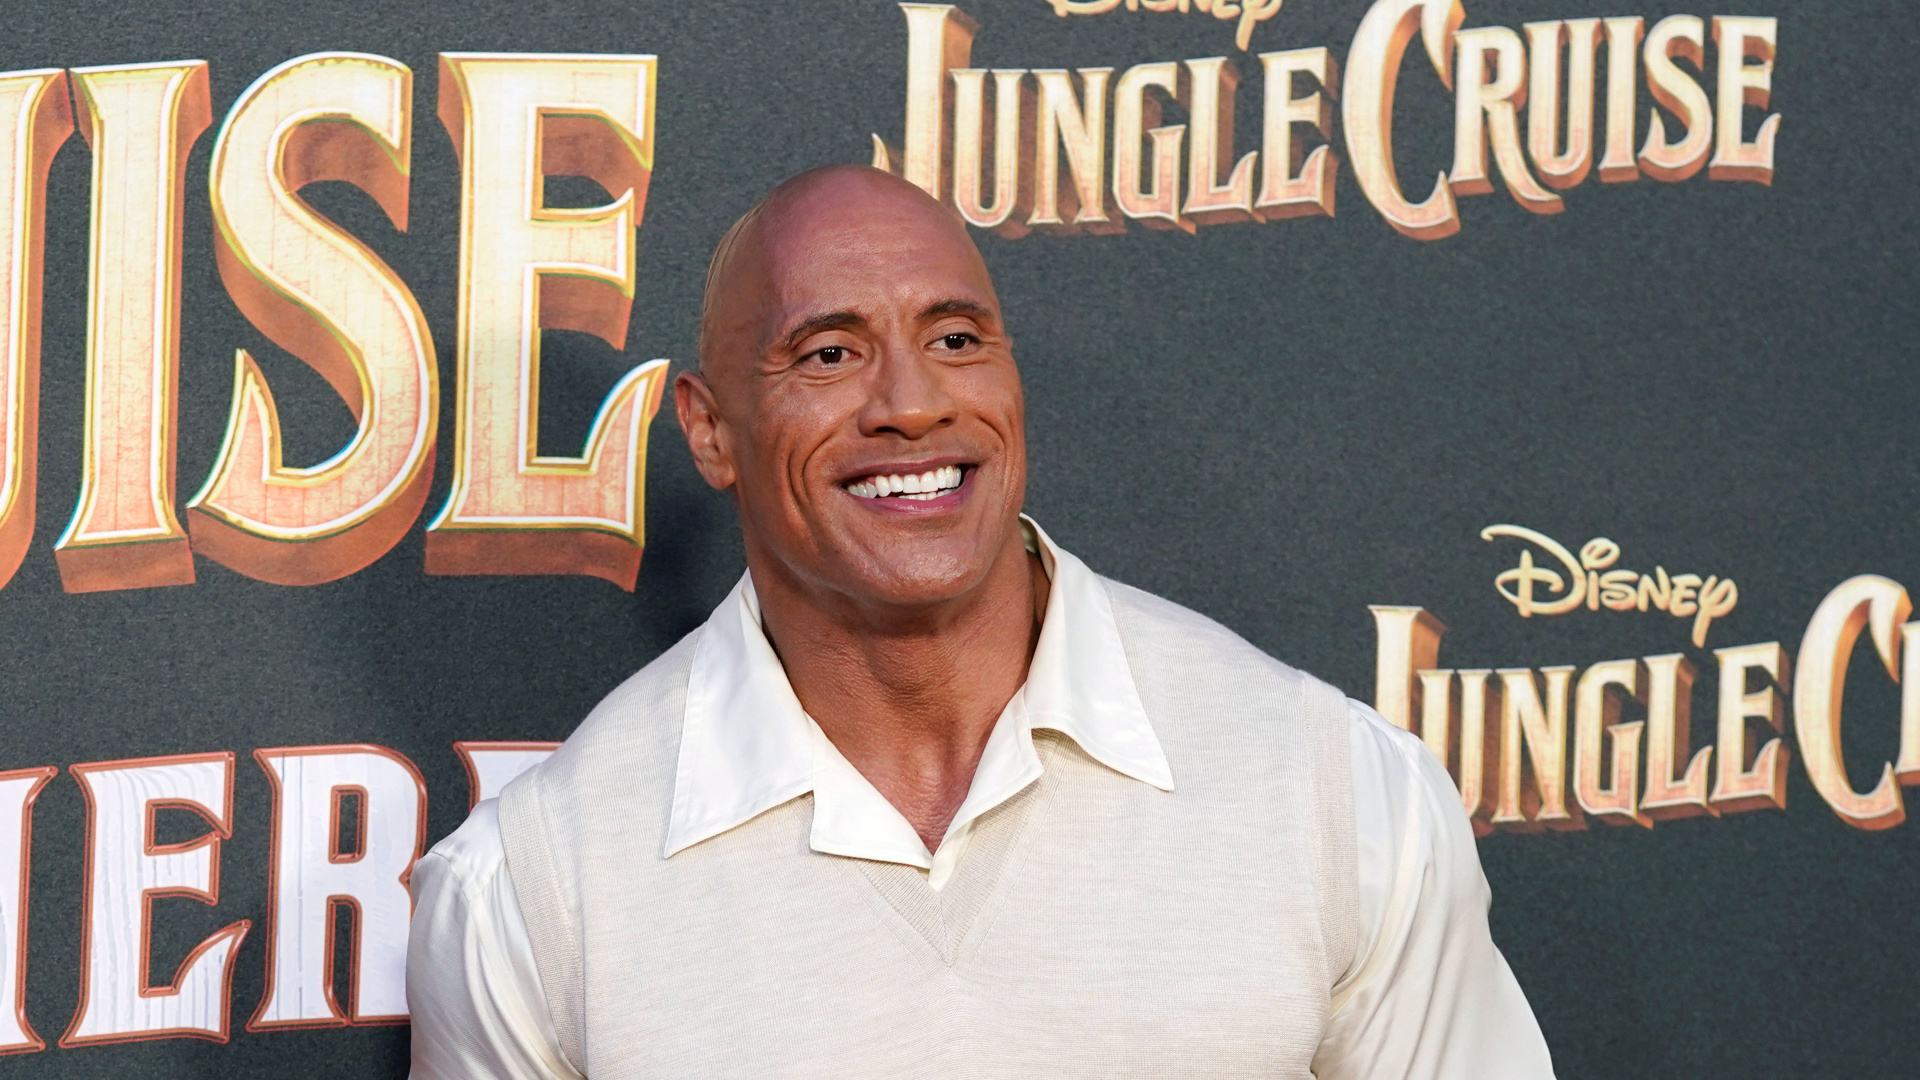 Running for President? Things you didn't know about The Rock, Dwayne Johnson